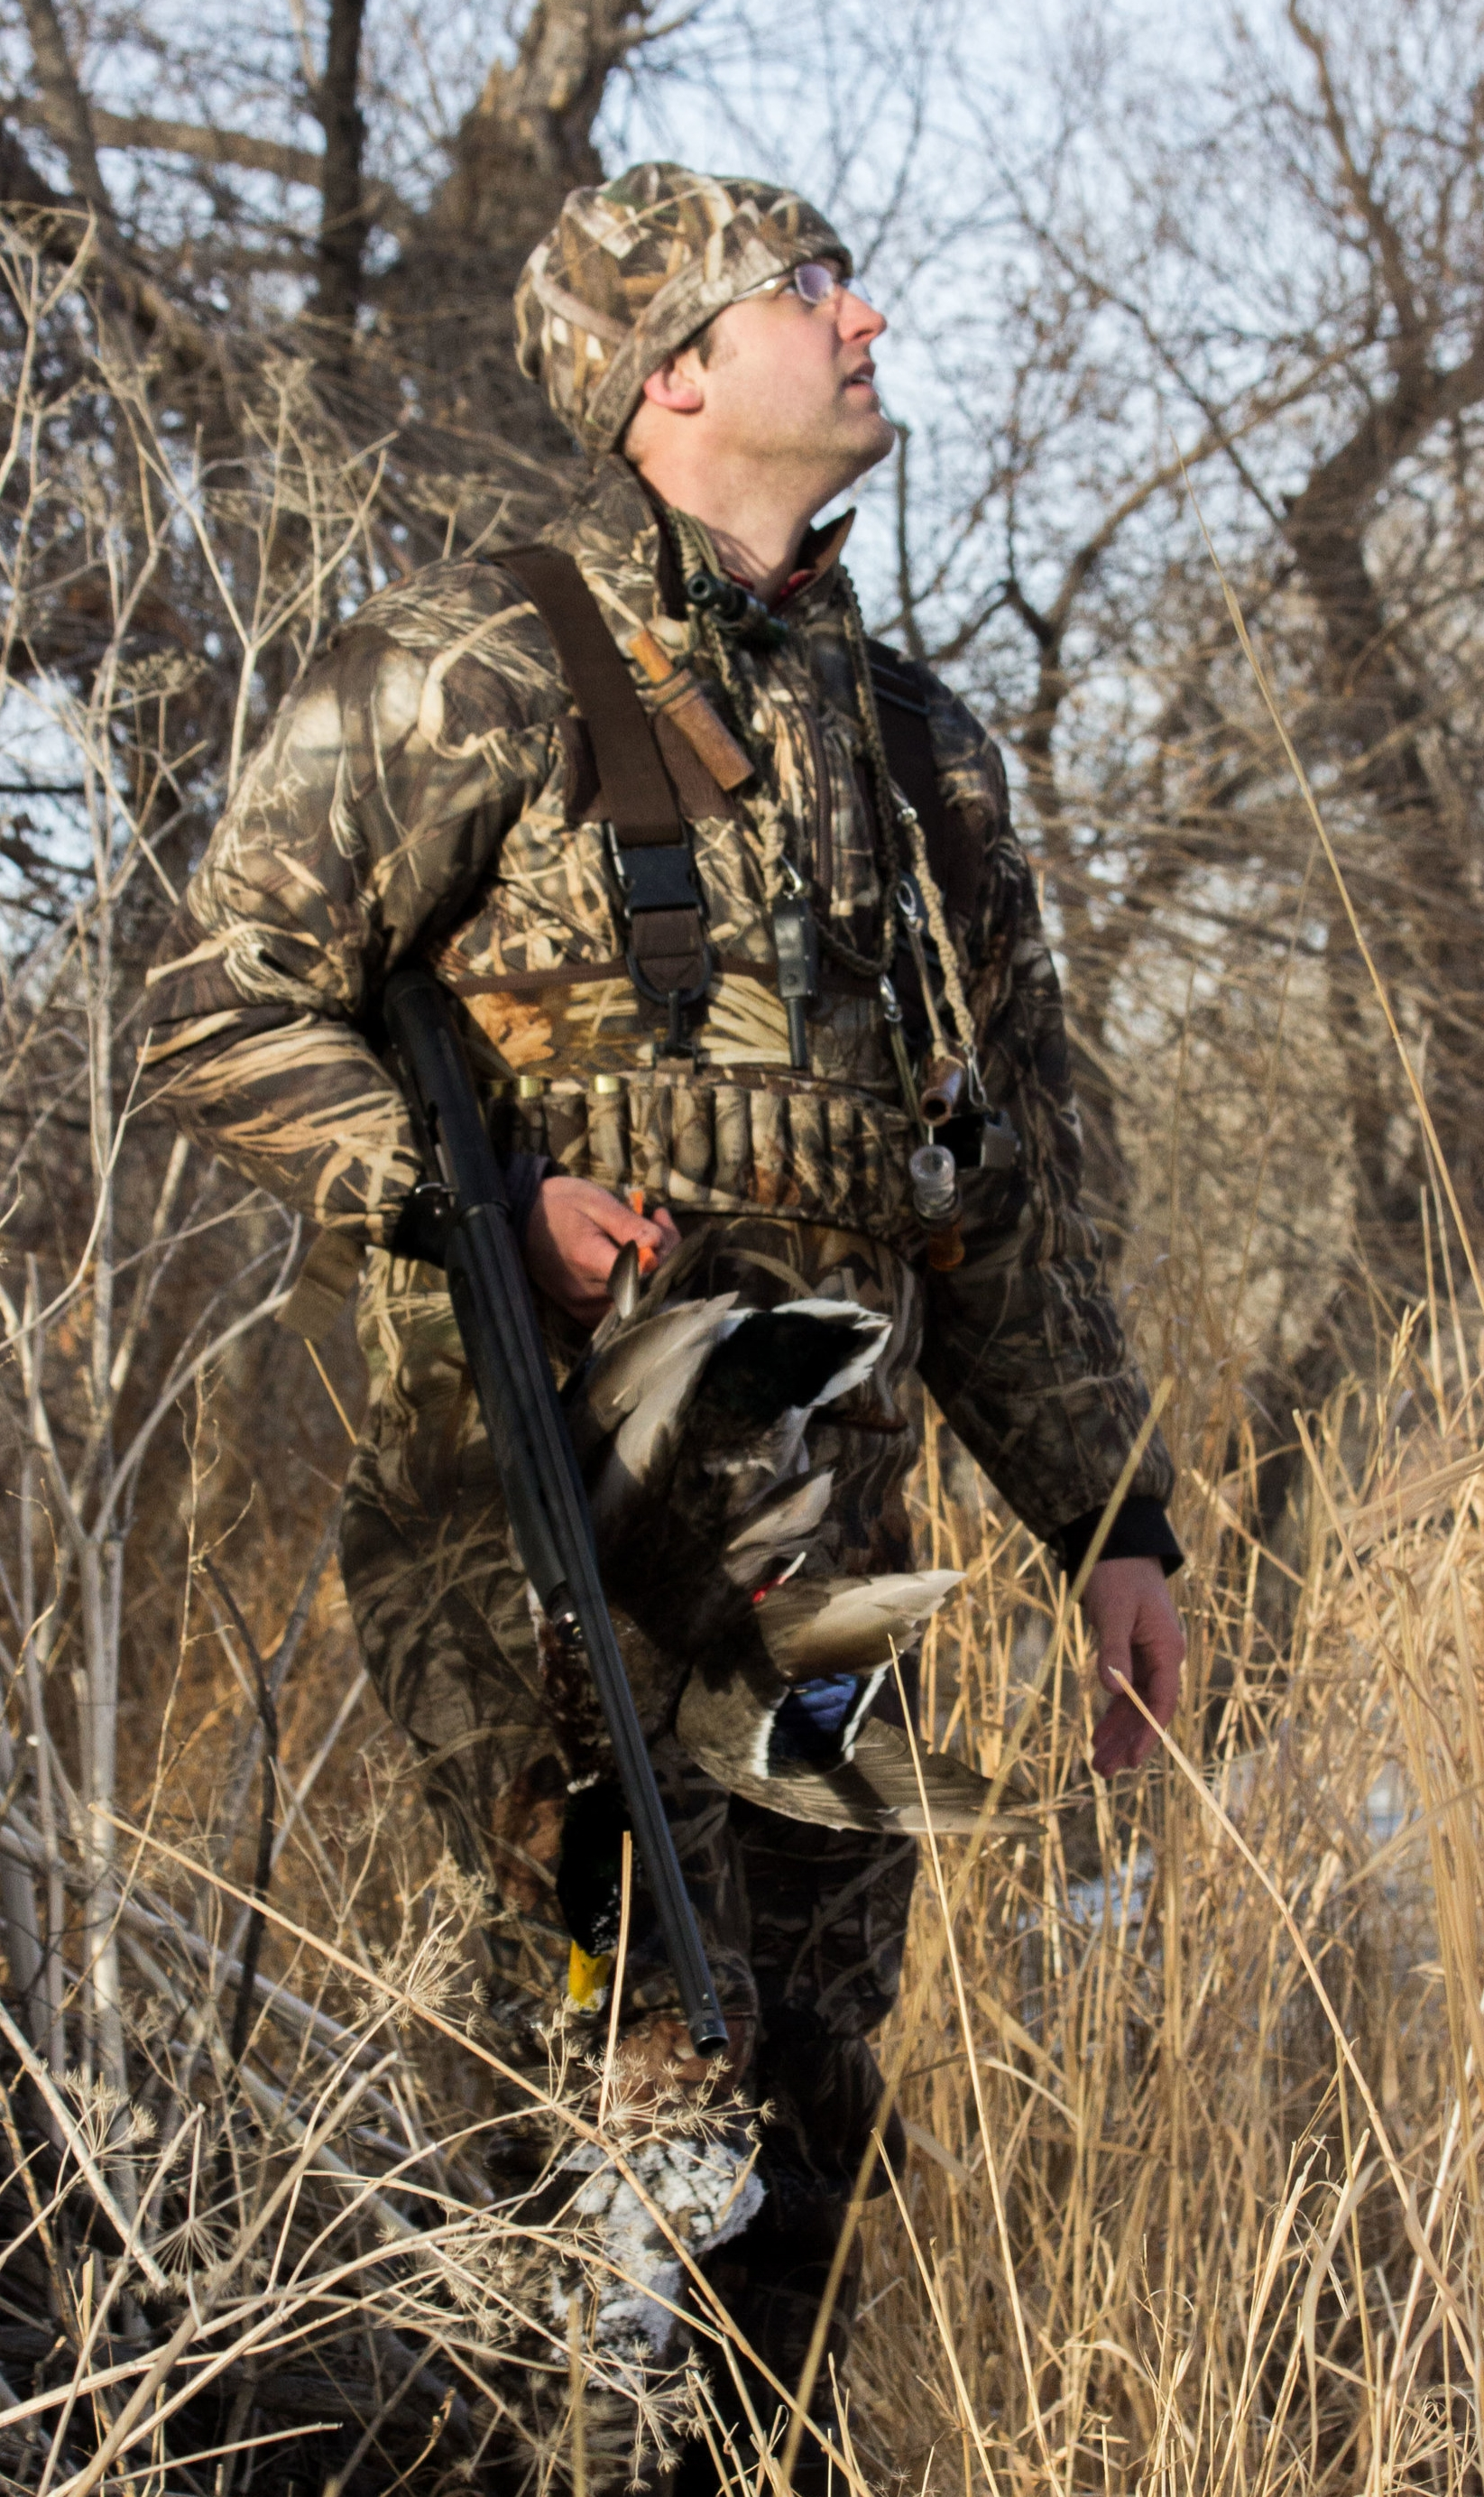 Hunting Attorney Nathaniel Gilbert on a successful duck hunt in Colorado, January 2017.  Nathaniel Gilbert is not only an attorney dedicated to defending hunters accused of violations, but also an avid outdoorsman.  When Nathaniel is not in court, assisting conservation non-profits, or working with individuals regarding pressure from Anti-Hunting organizations, Nathaniel can be found hunting alongside his dog in any of the country.